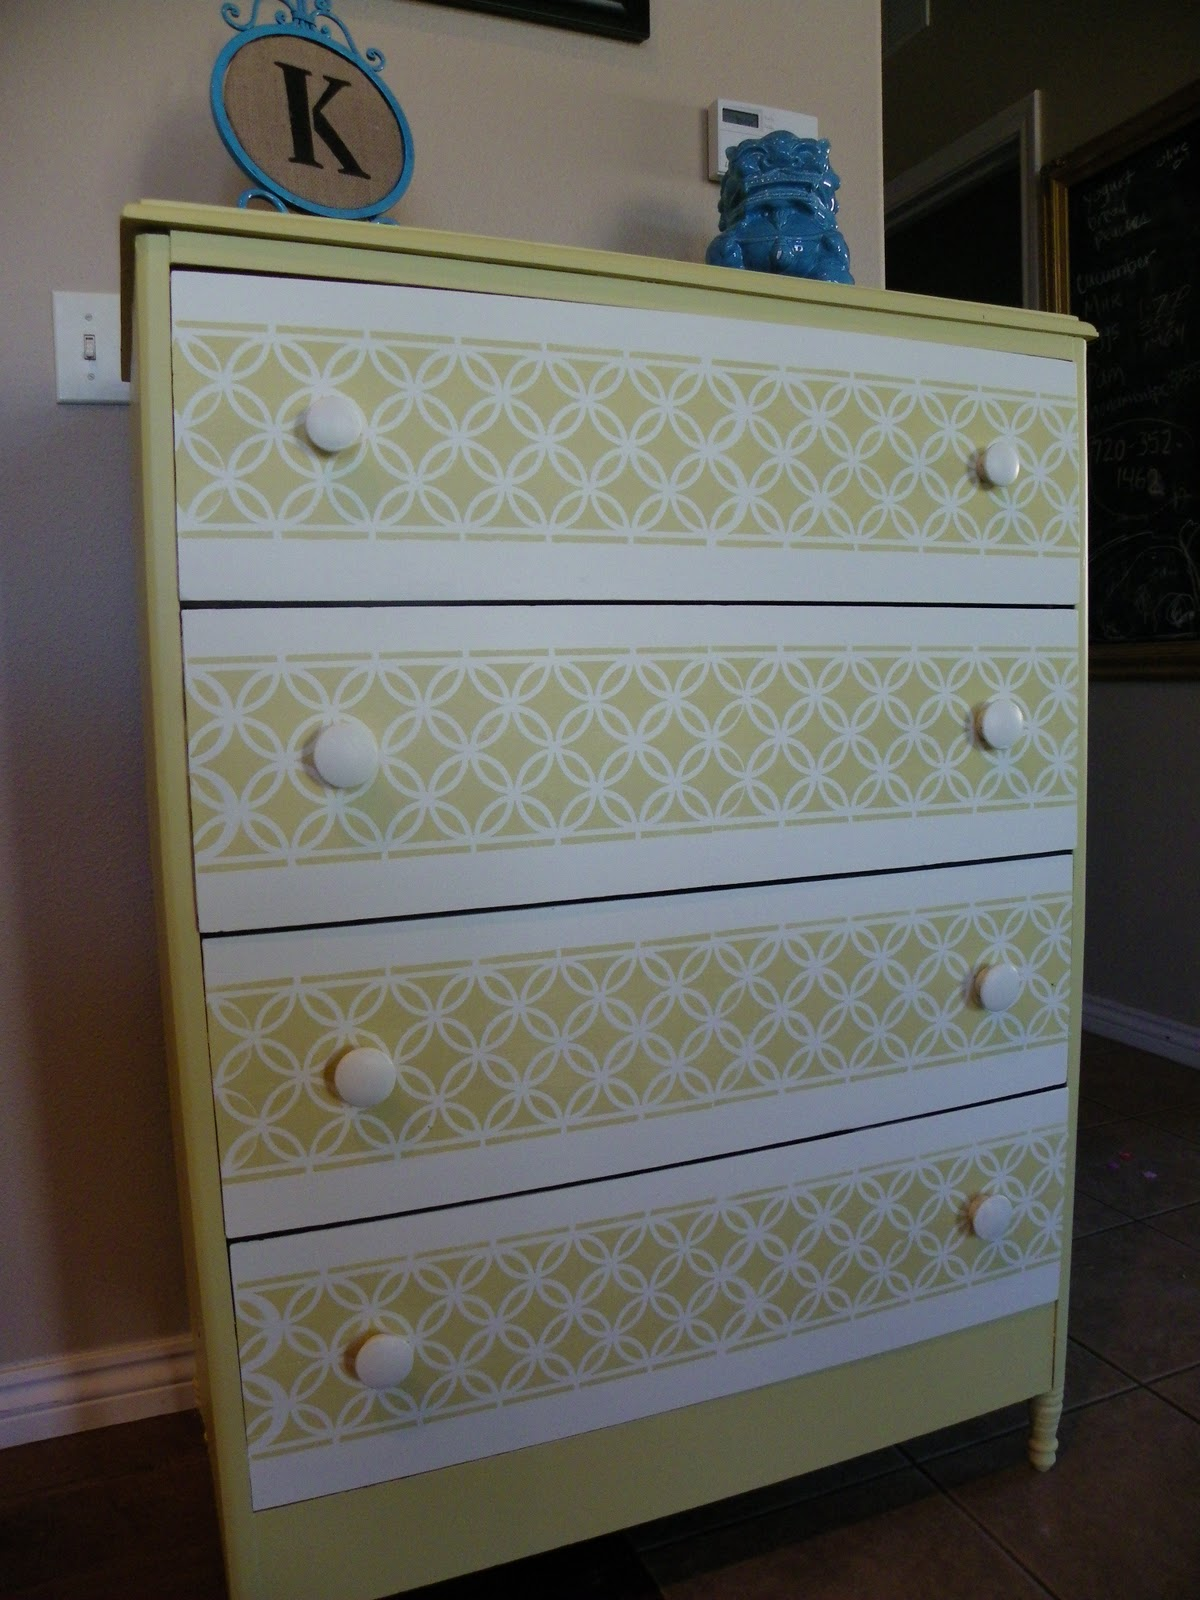 Remodelaholic | Painted Dresser With Fun Stencil Pattern